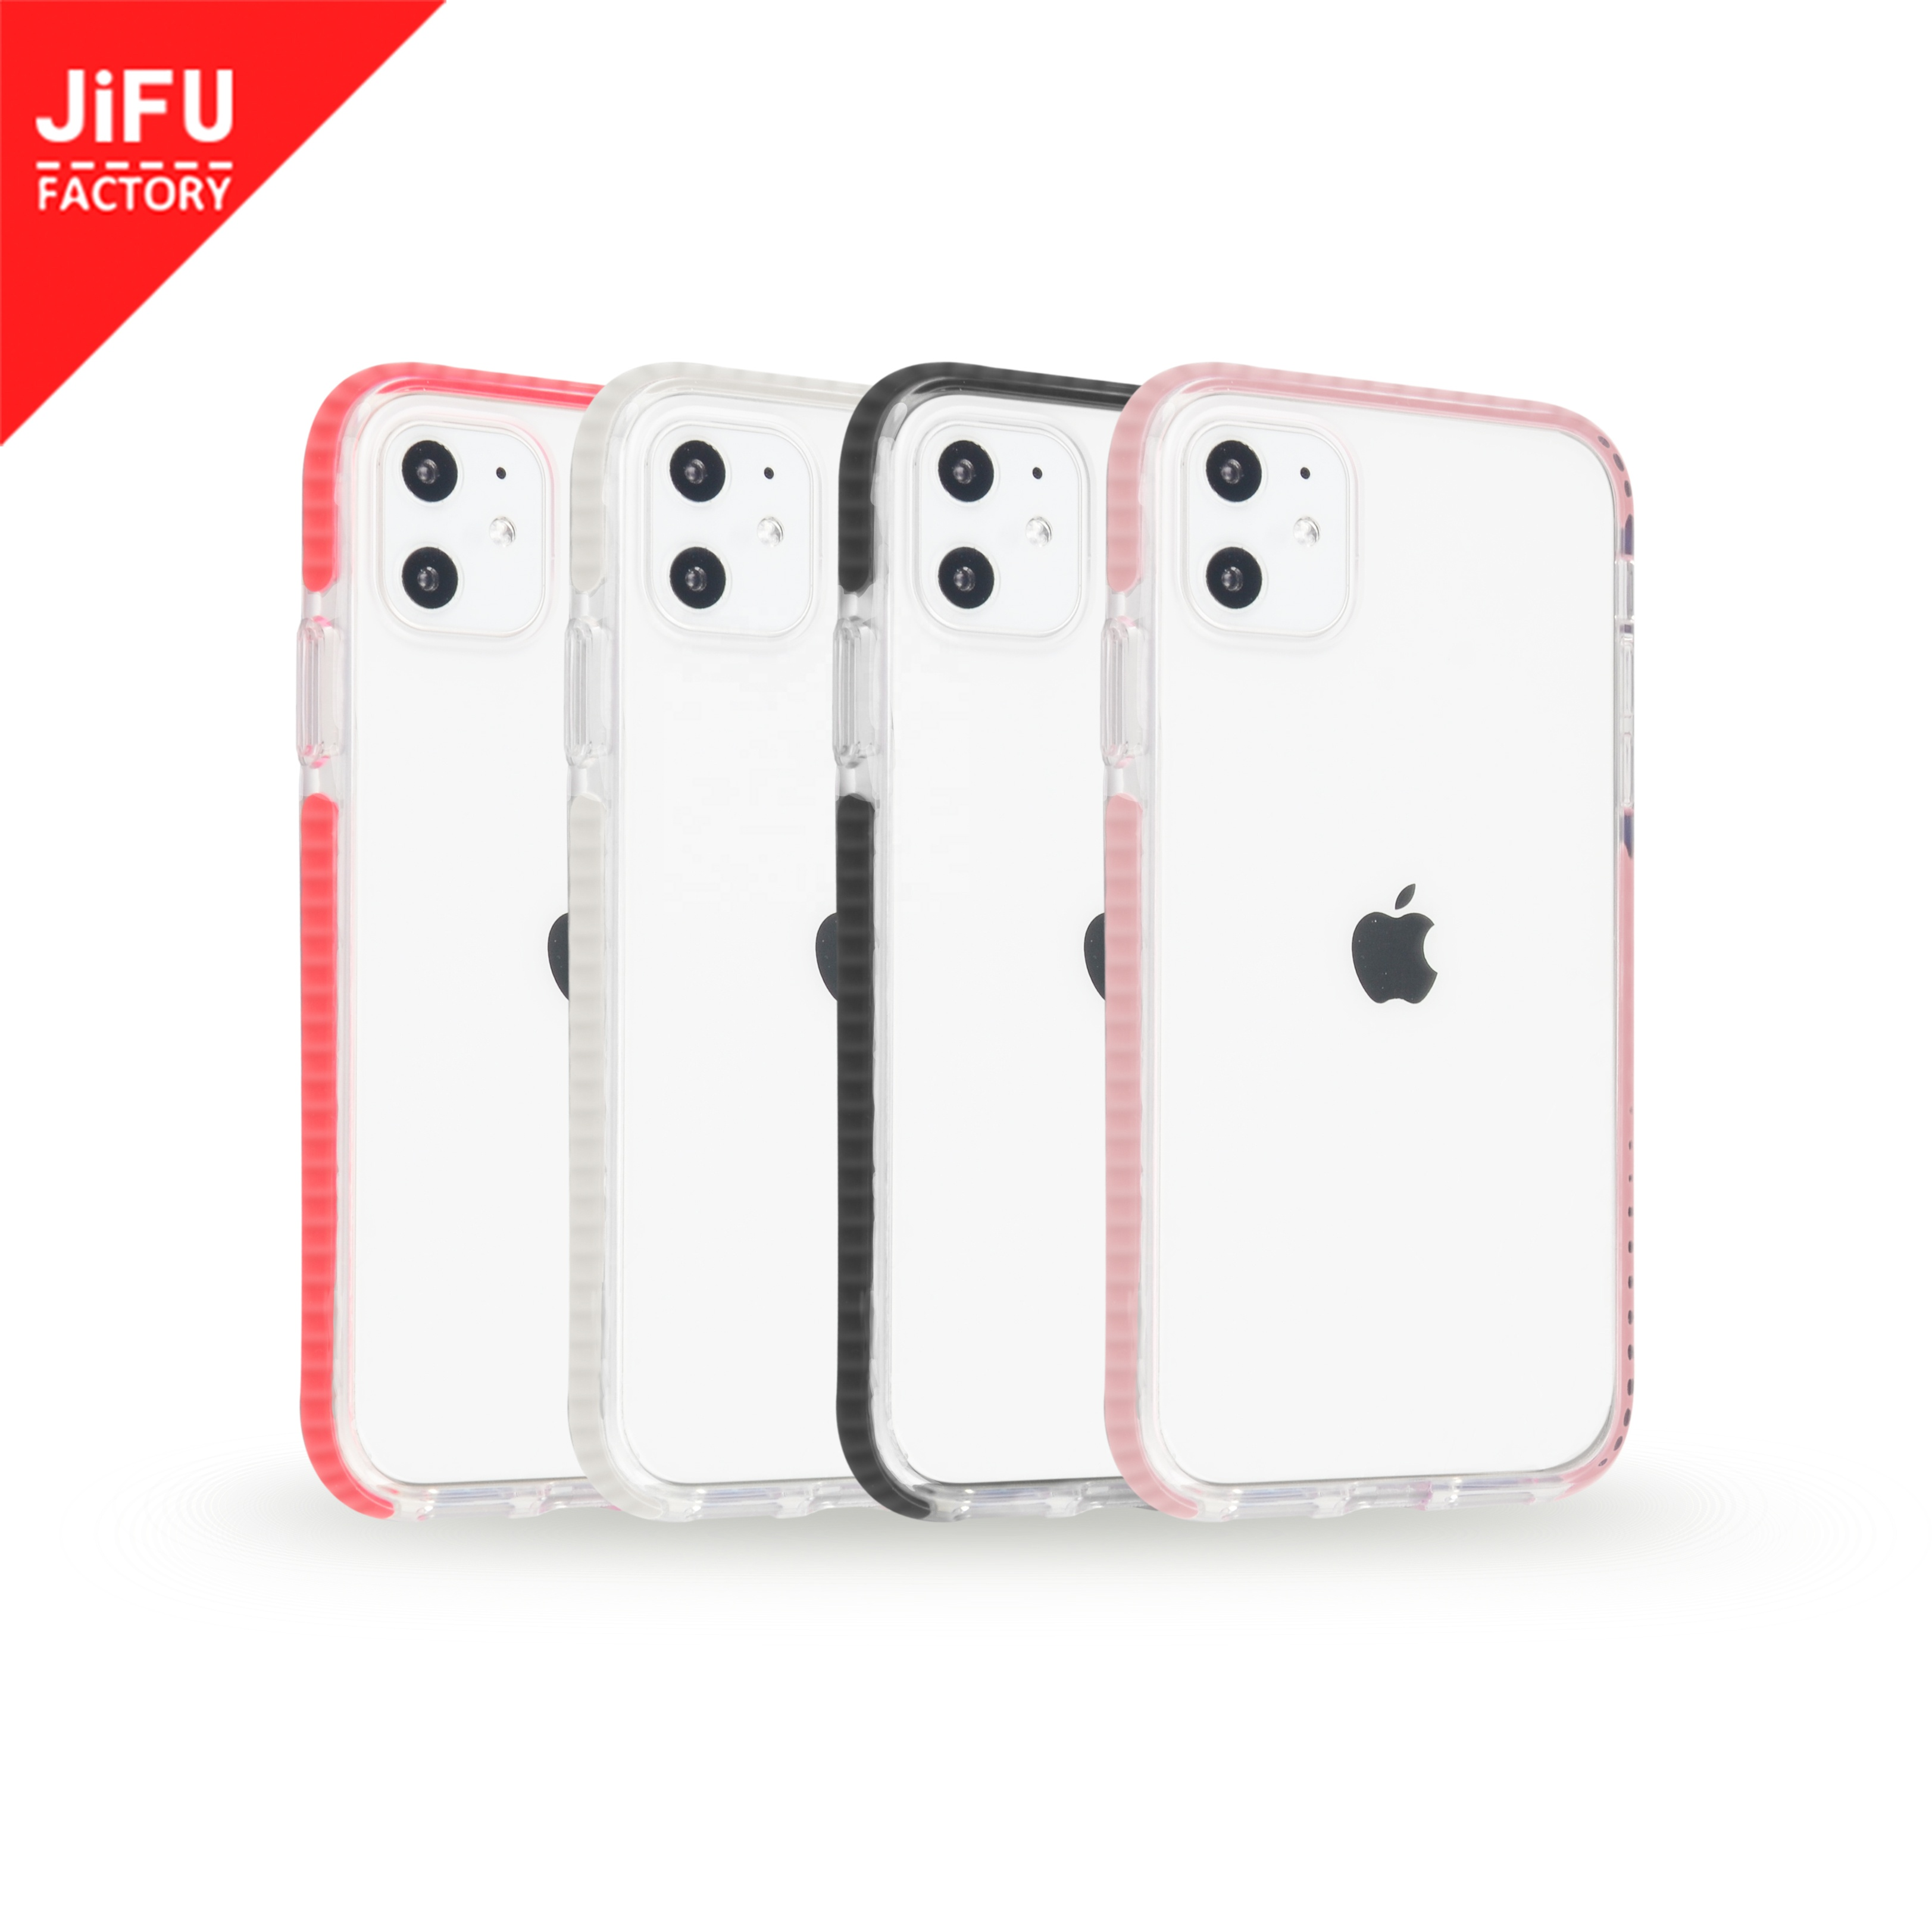 Newest TPU+PC+ two-tone impact <strong>phone</strong> <strong>case</strong> for iPhone 11 <strong>case</strong>